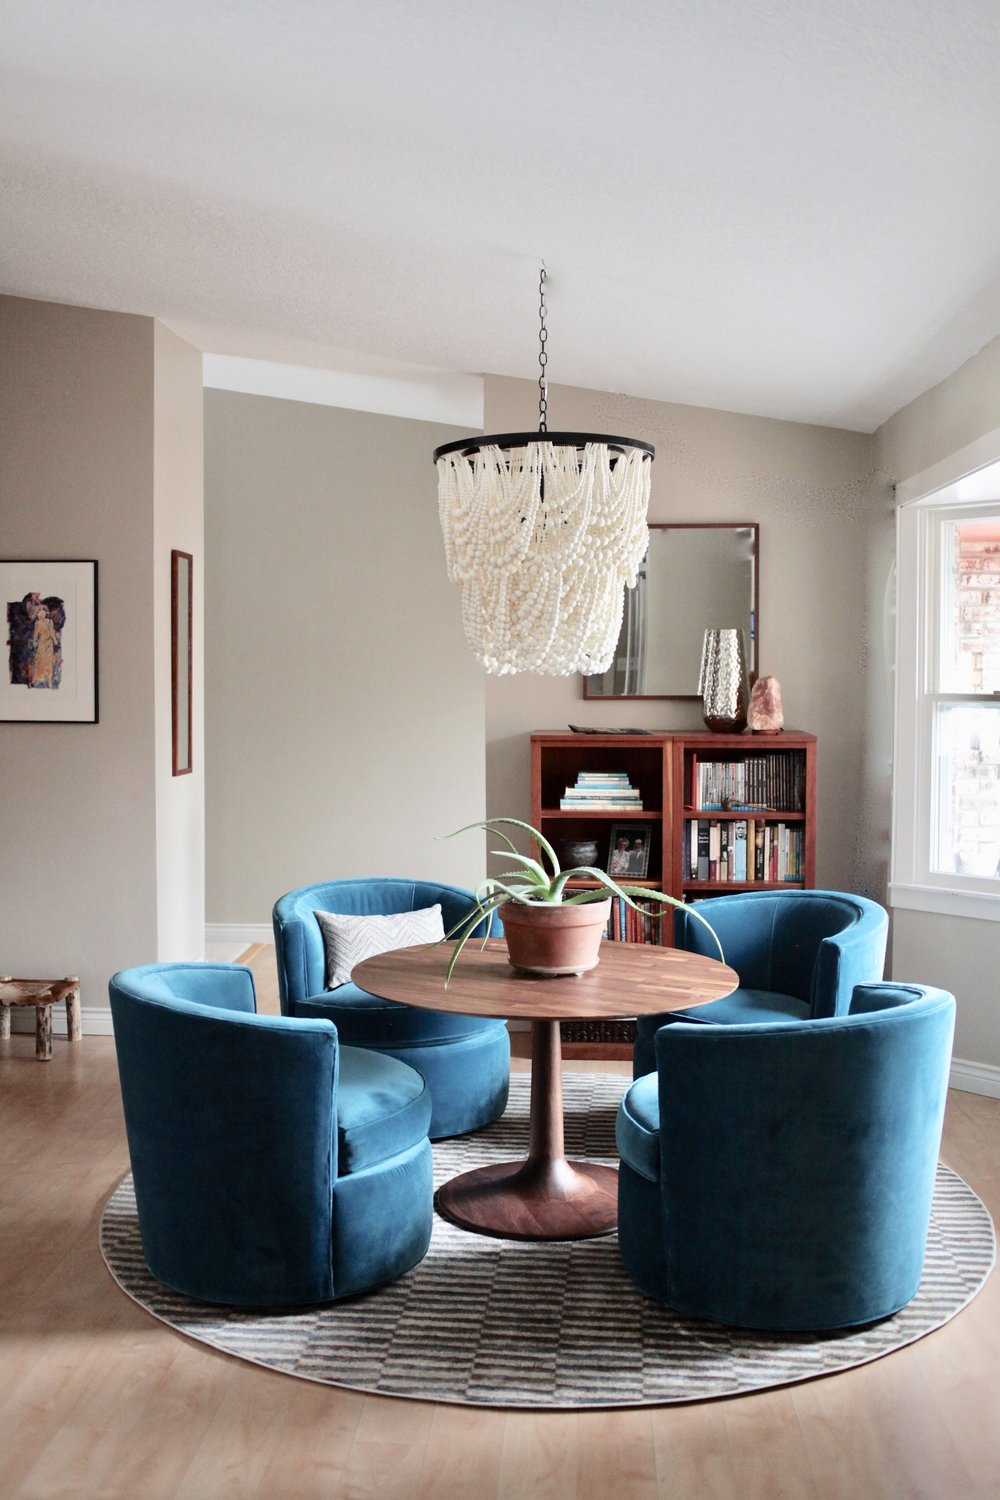 Modern blue velvet Room & Board Otis chairs with round wood table and Pottery Barn Amelia wooden beaded chandelier.jpeg